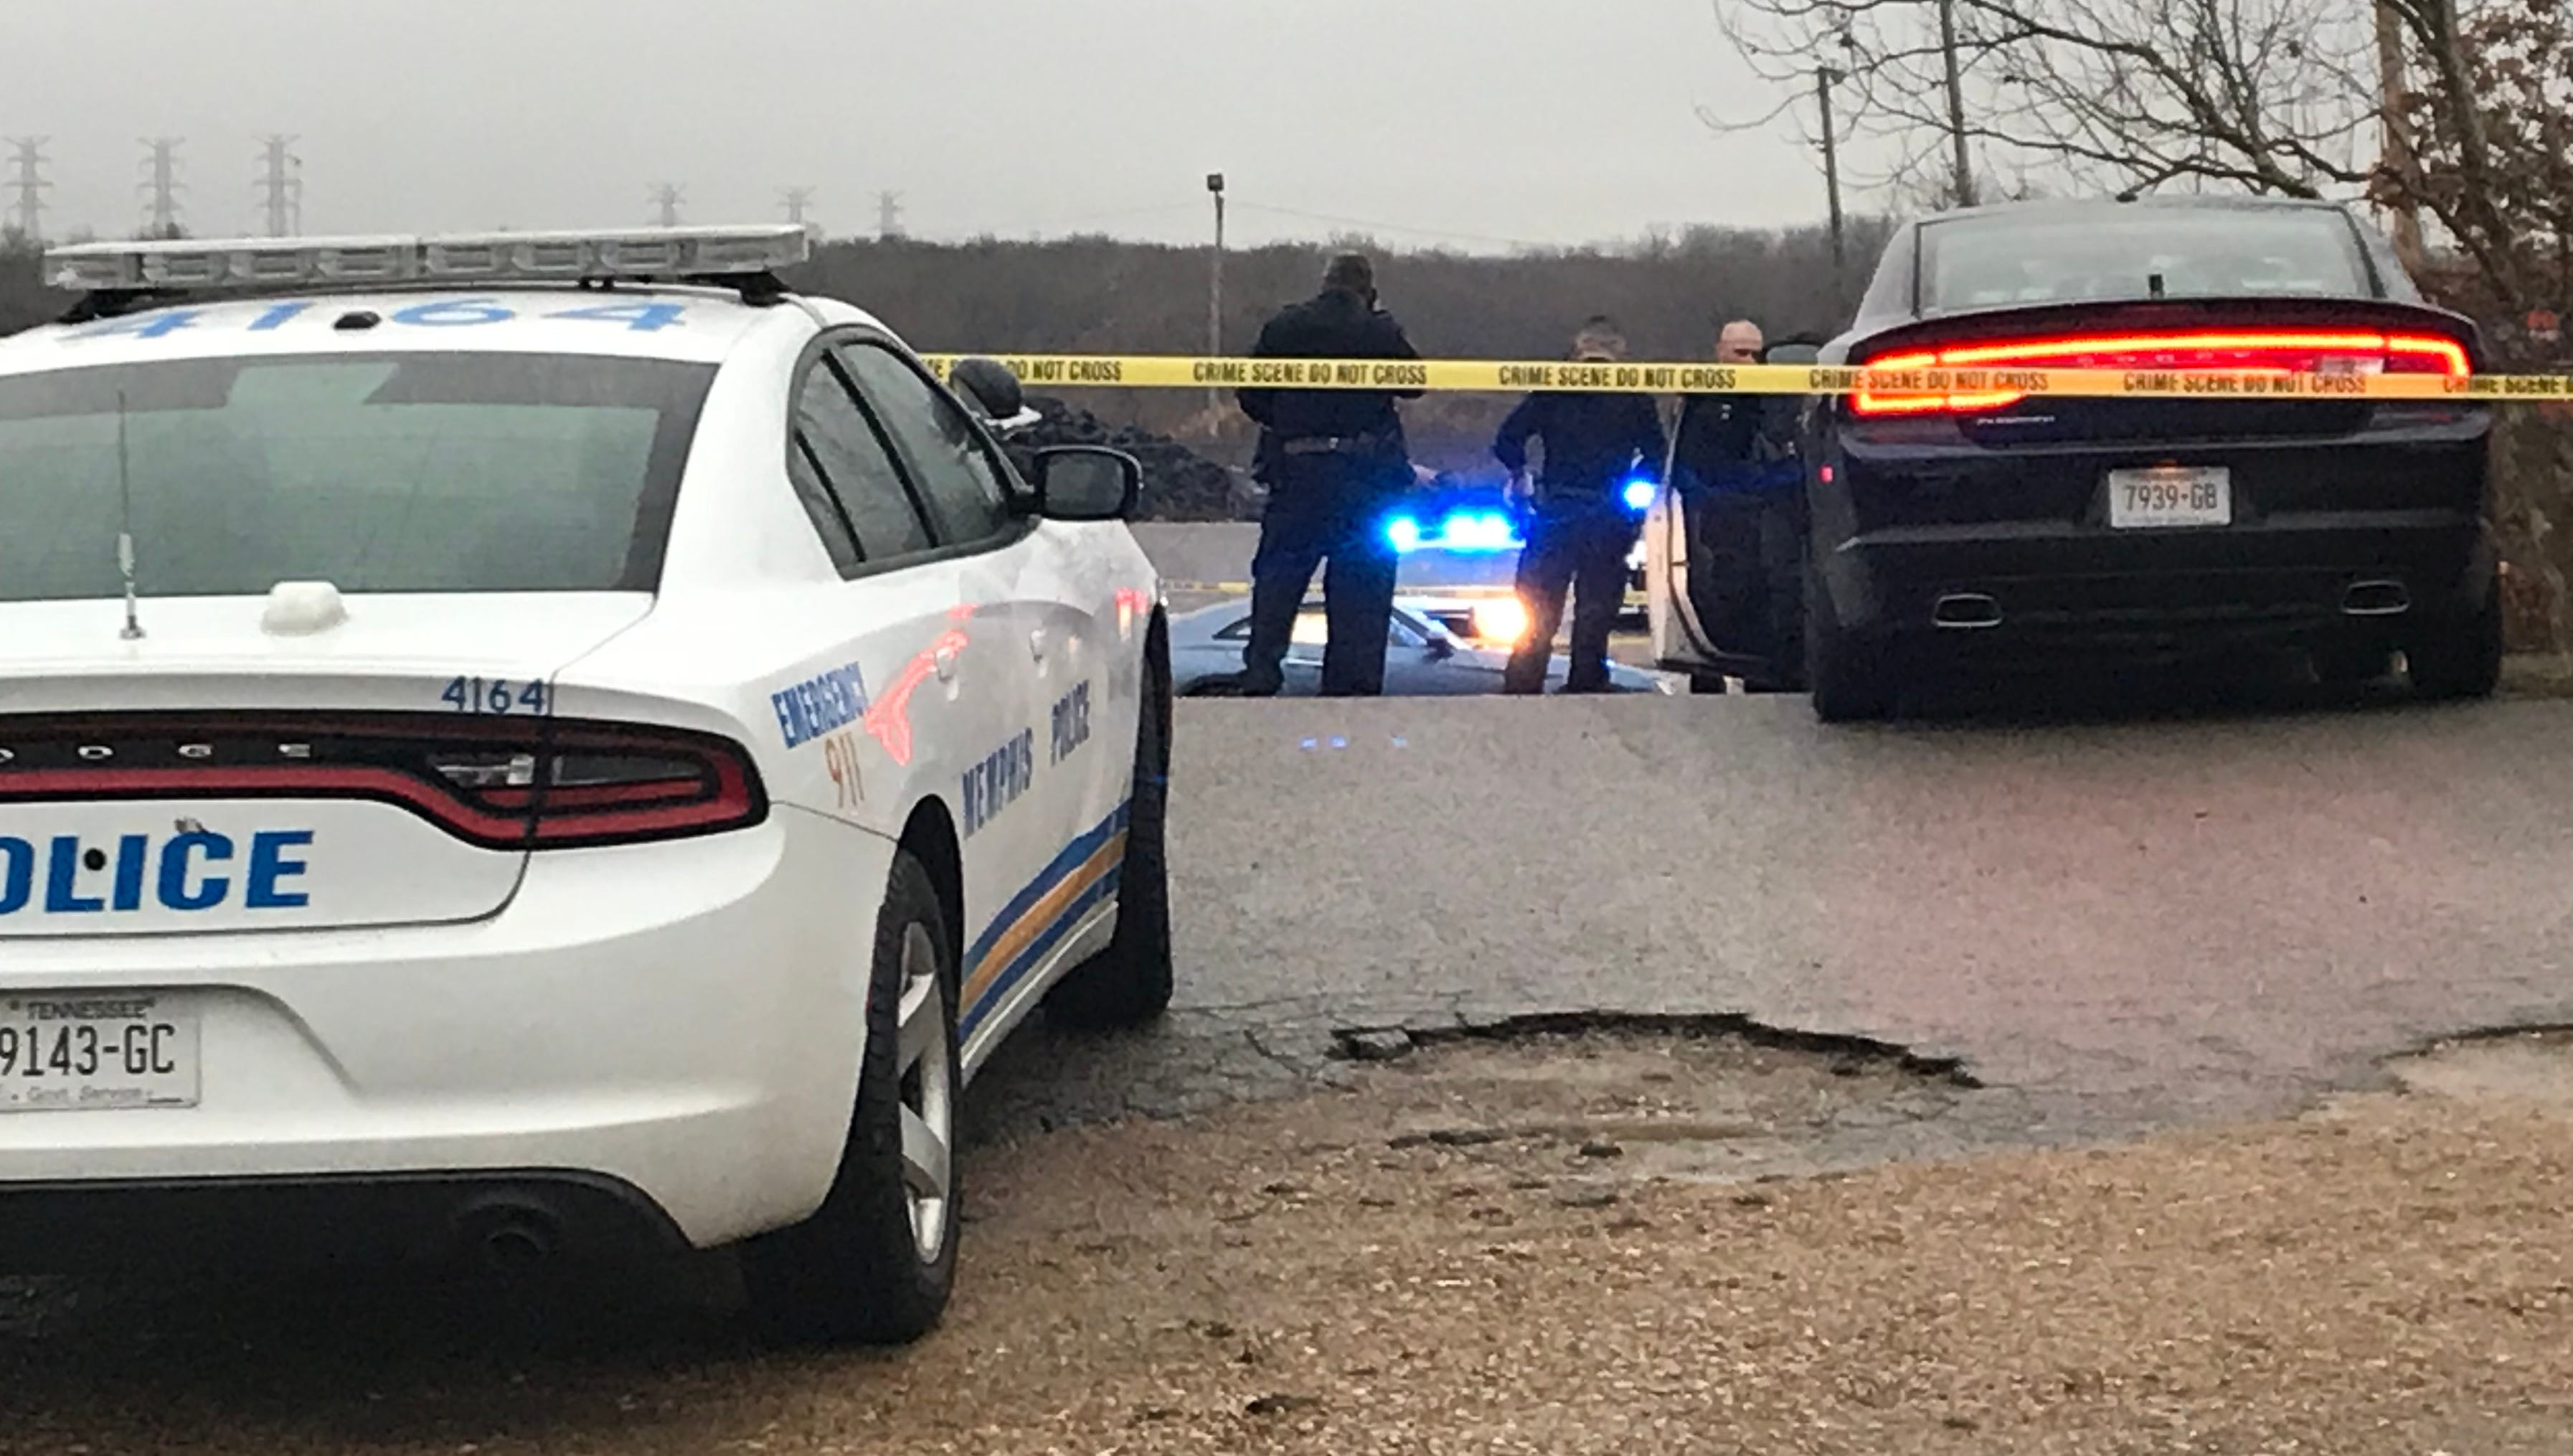 Police on the scene at the Memphis public works facility at 1514 N. Bellevue Blvd. on Monday, Feb. 11, 2019.